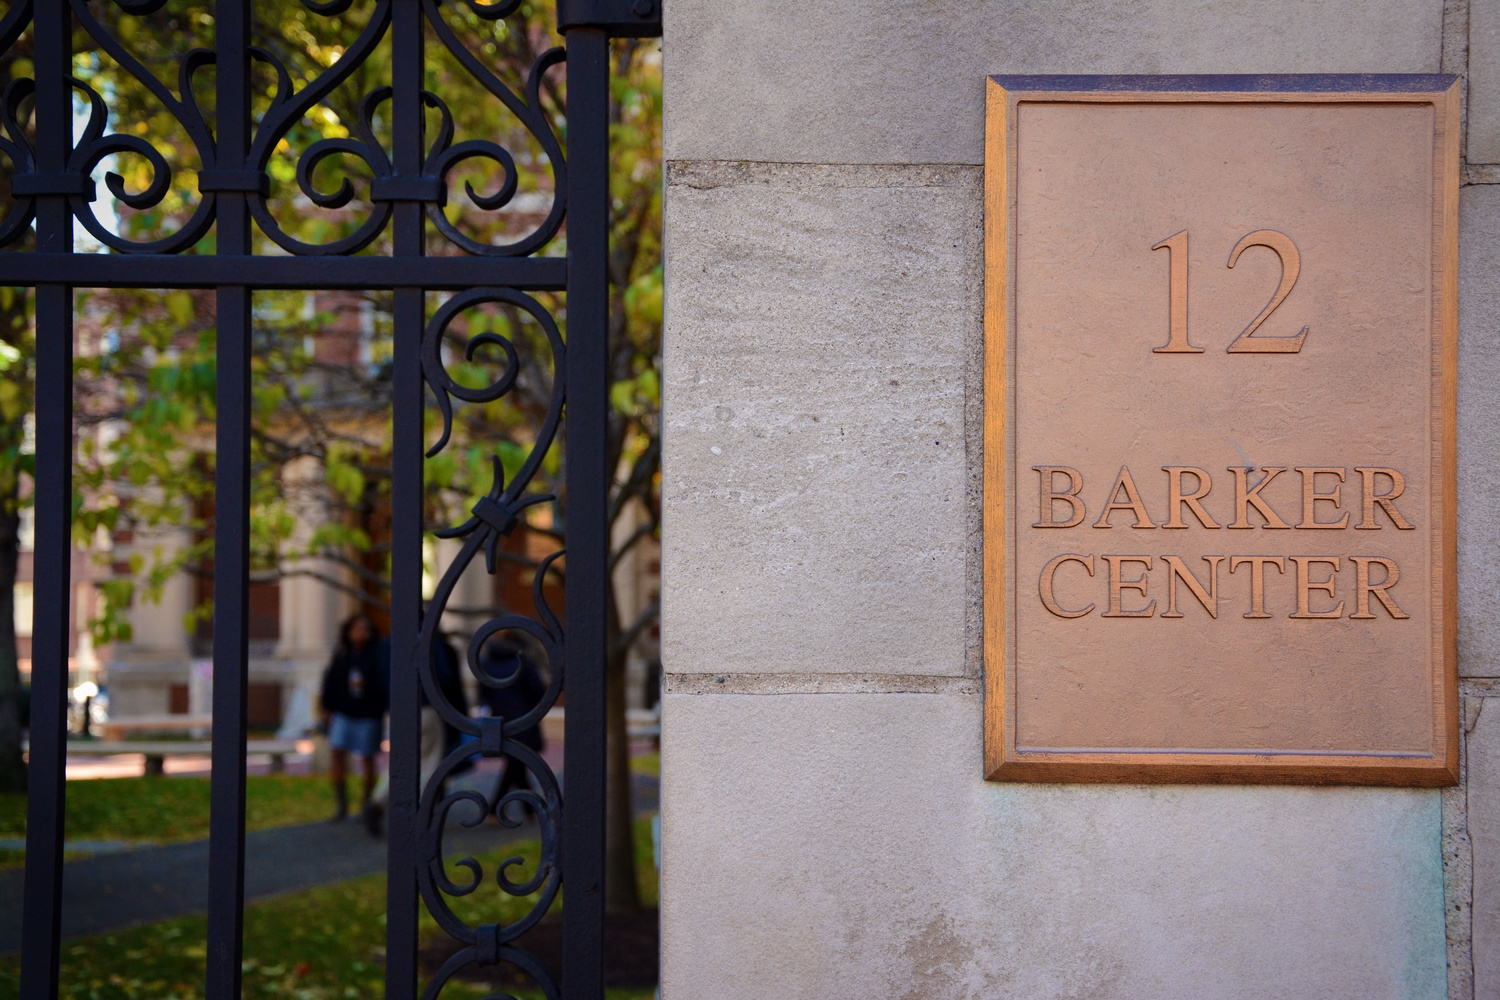 The gate to the Barker Center, home to several English and humanities courses, is located across the street from Lamont Gate.